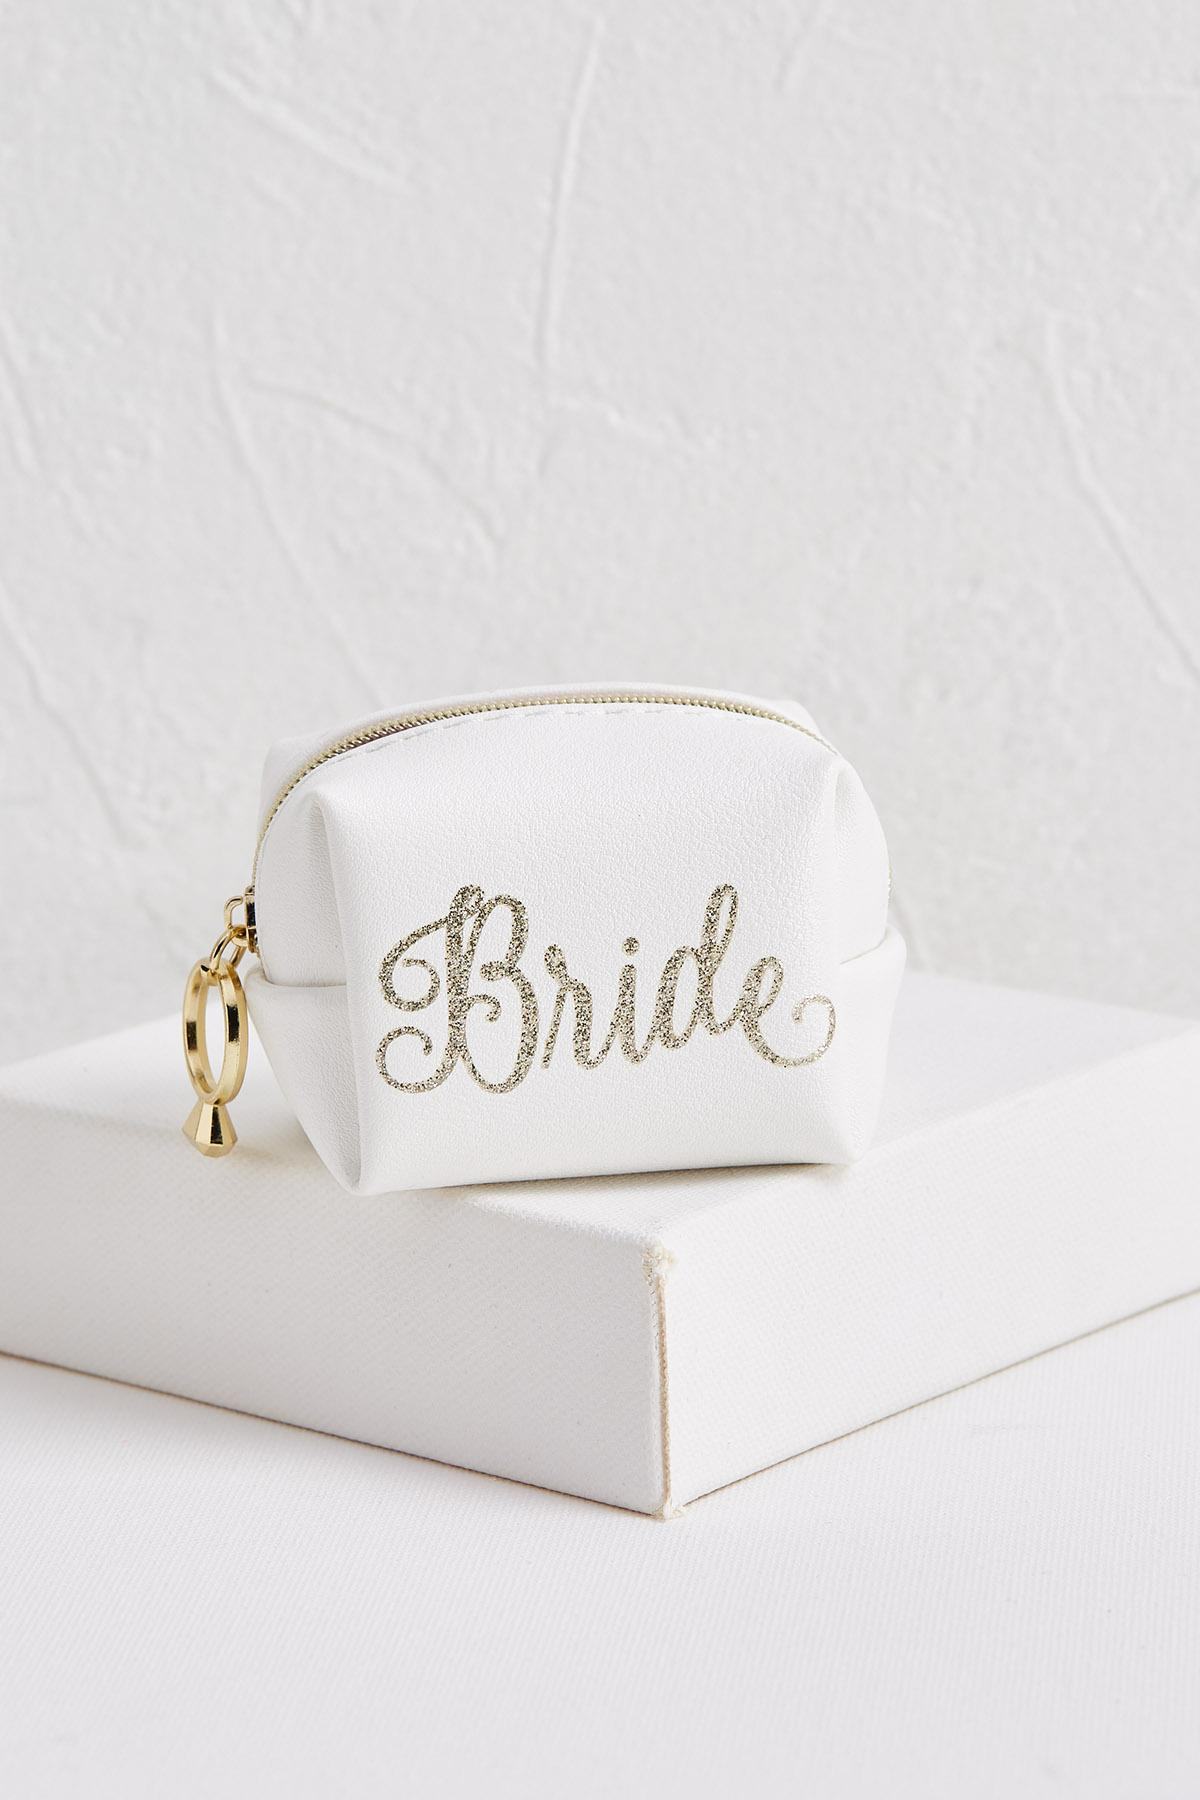 Bride Emergency Kit